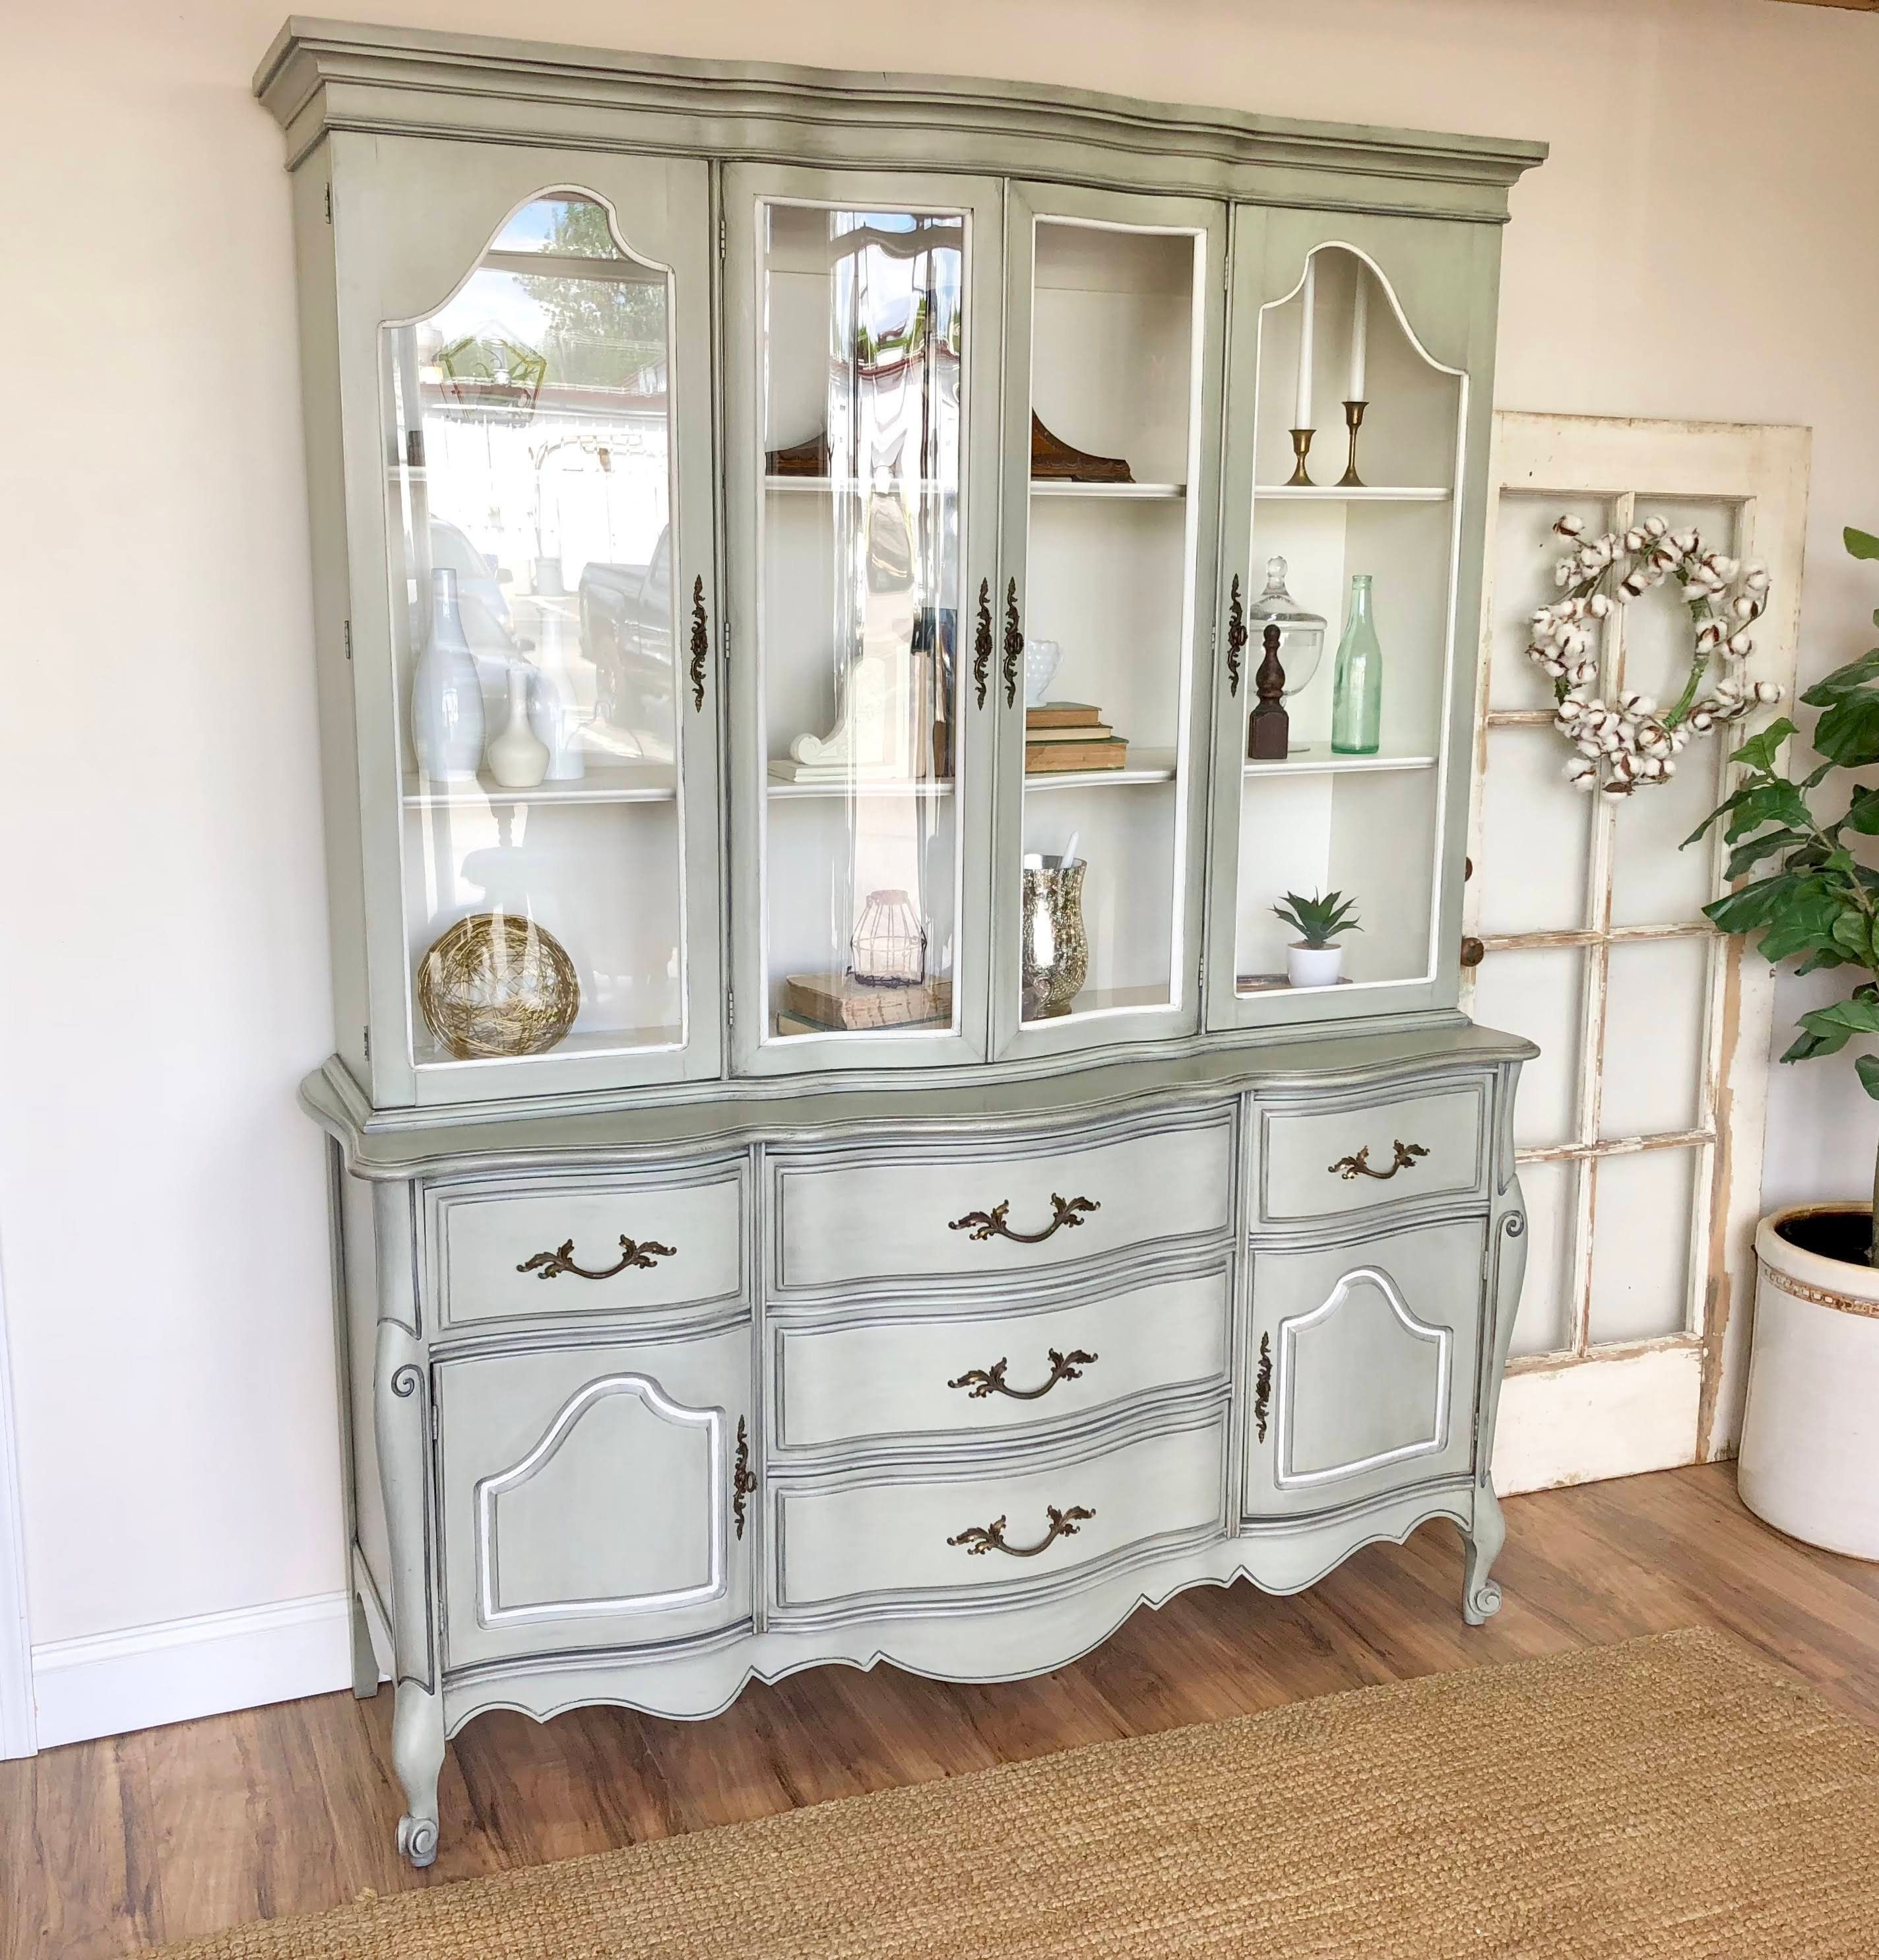 French Provincial Vintage China Cabinet Shabby Chic Furniture Vintage China Cabinets Chic Home Decor Shabby Chic Furniture